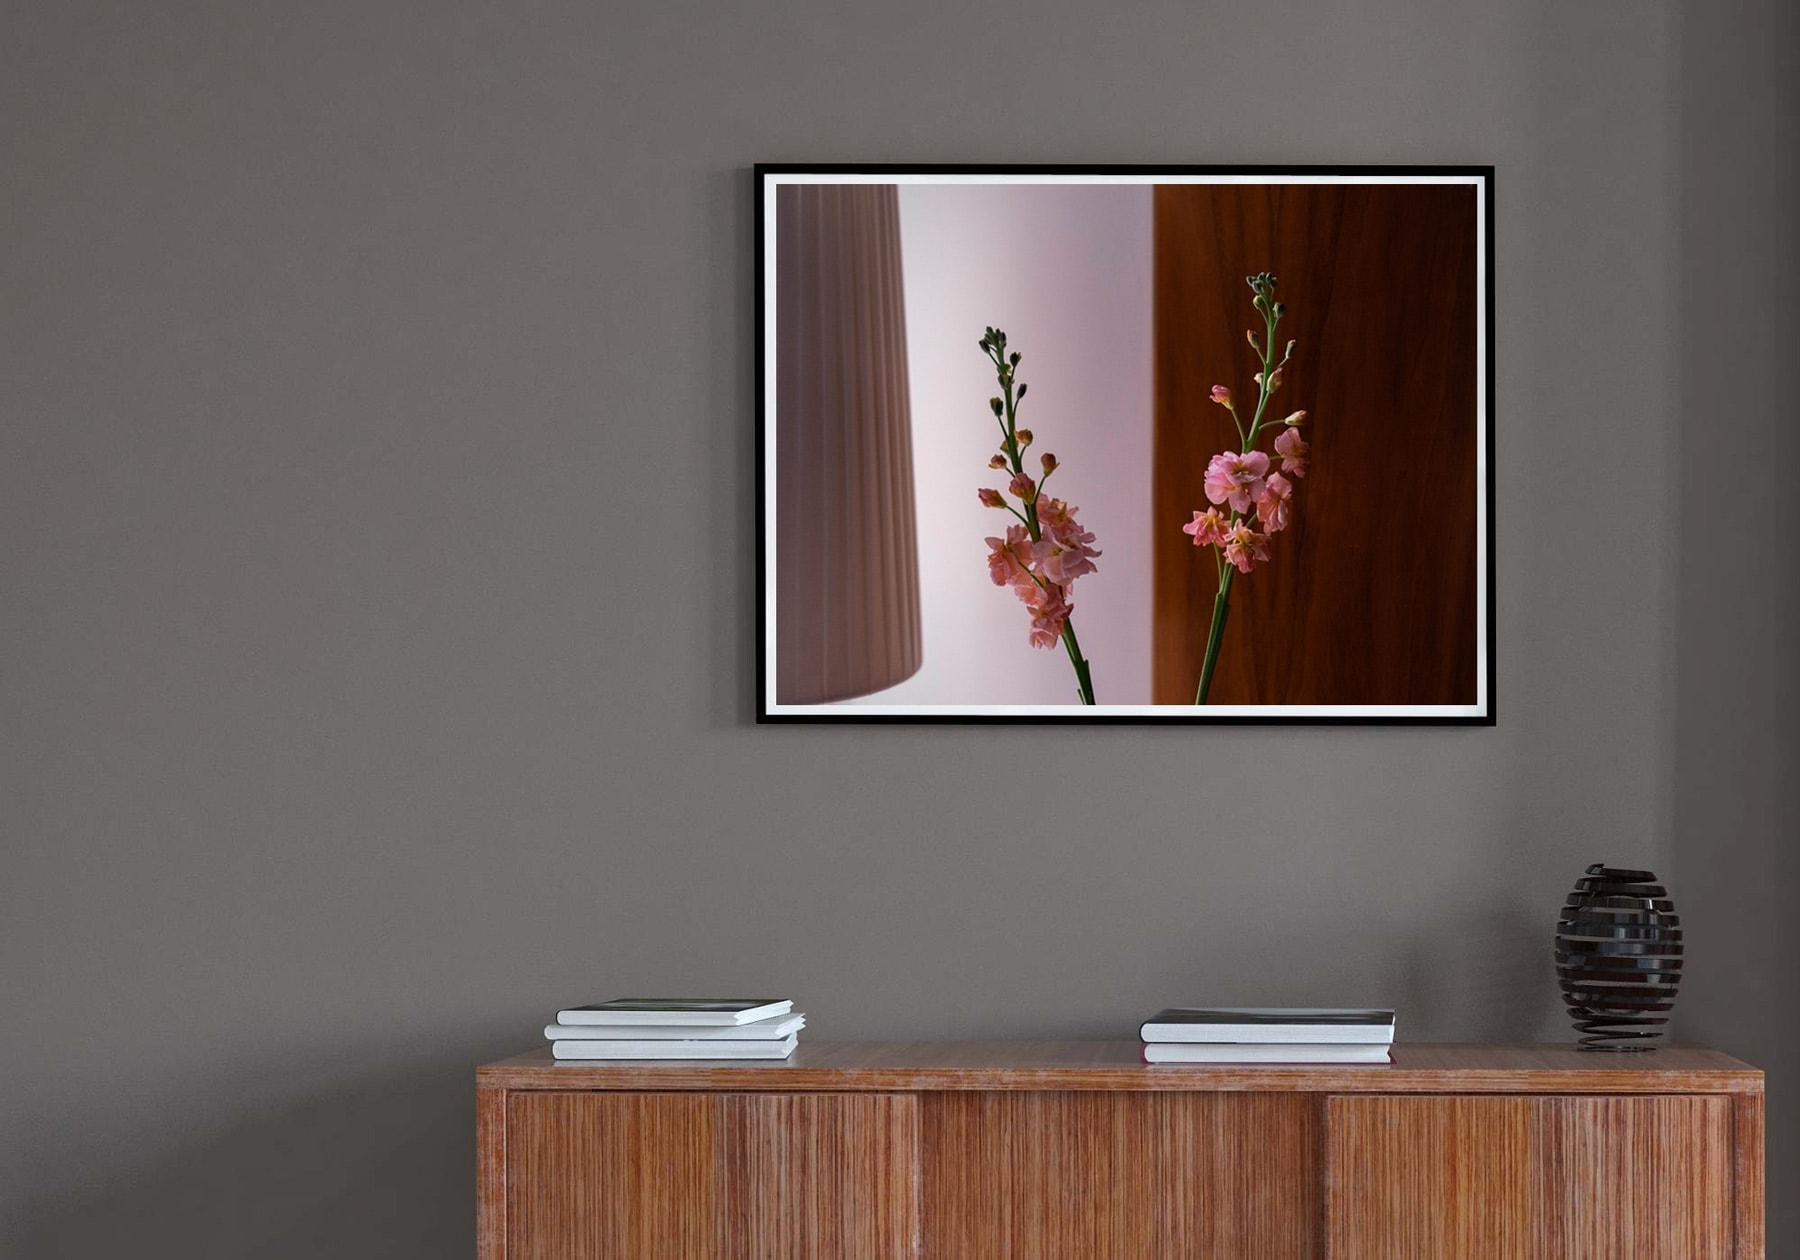 Petals in New York fine art print by Margate Editions